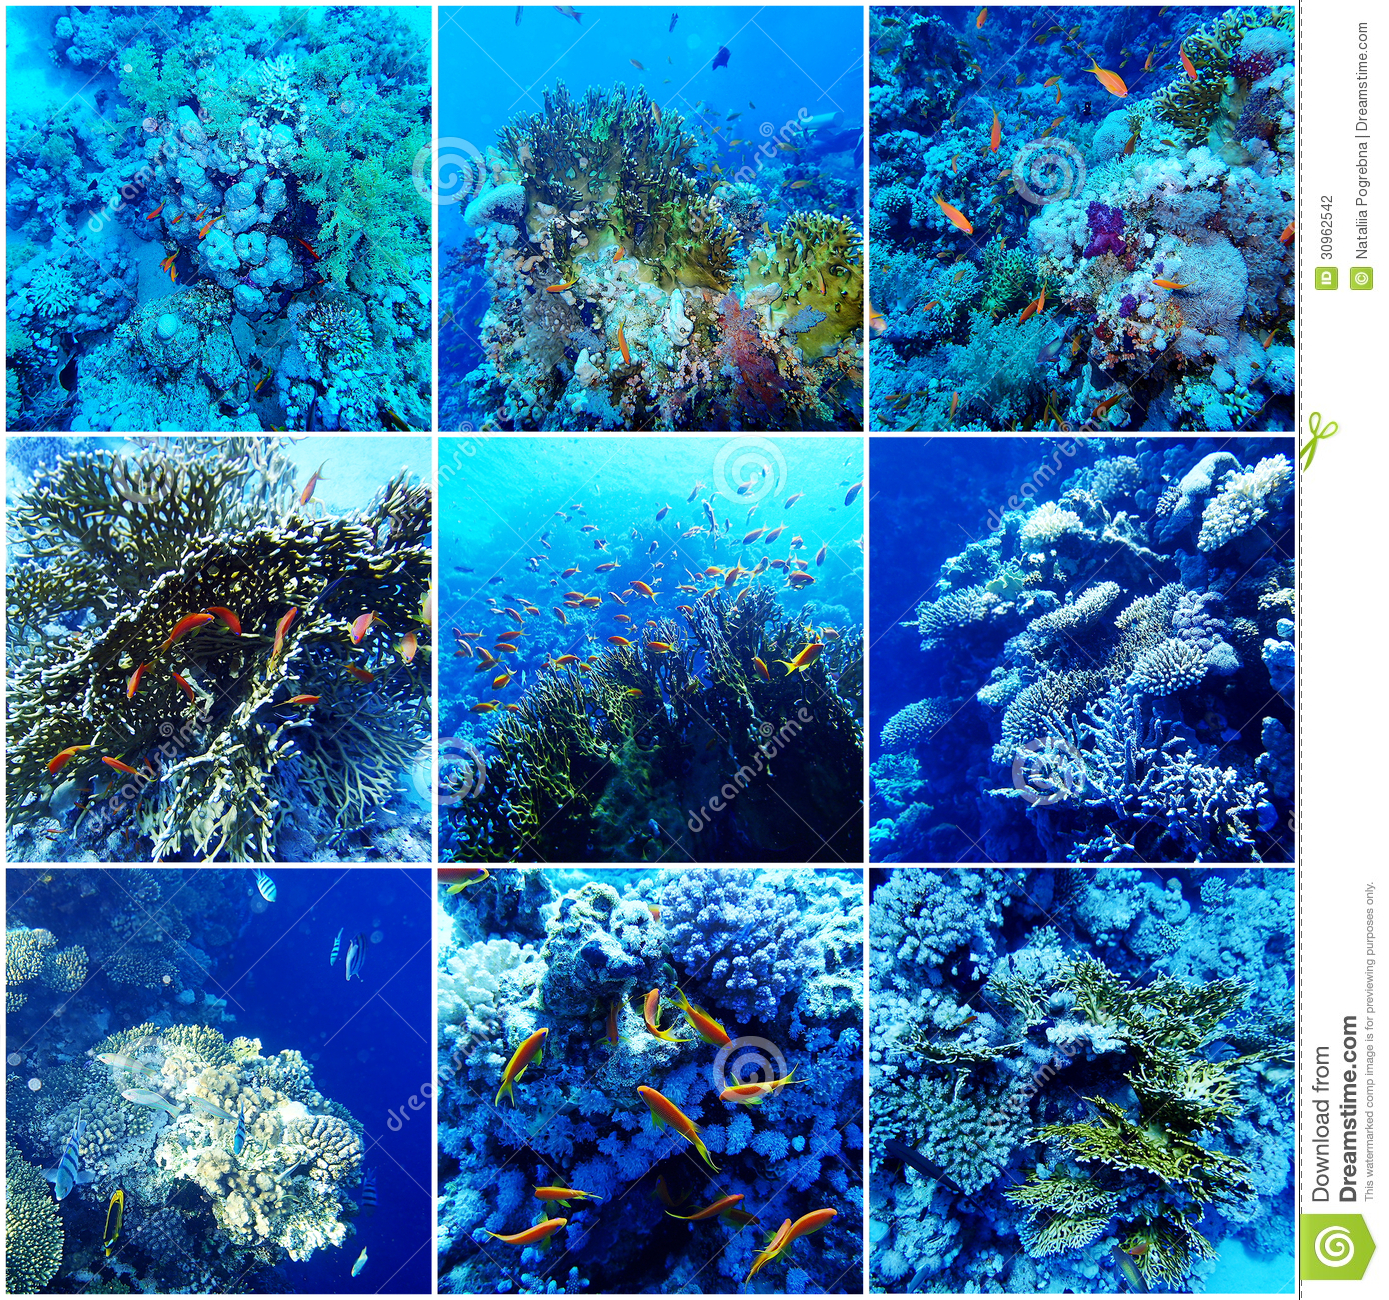 sea animals collage stock photos images u0026 pictures 66 images